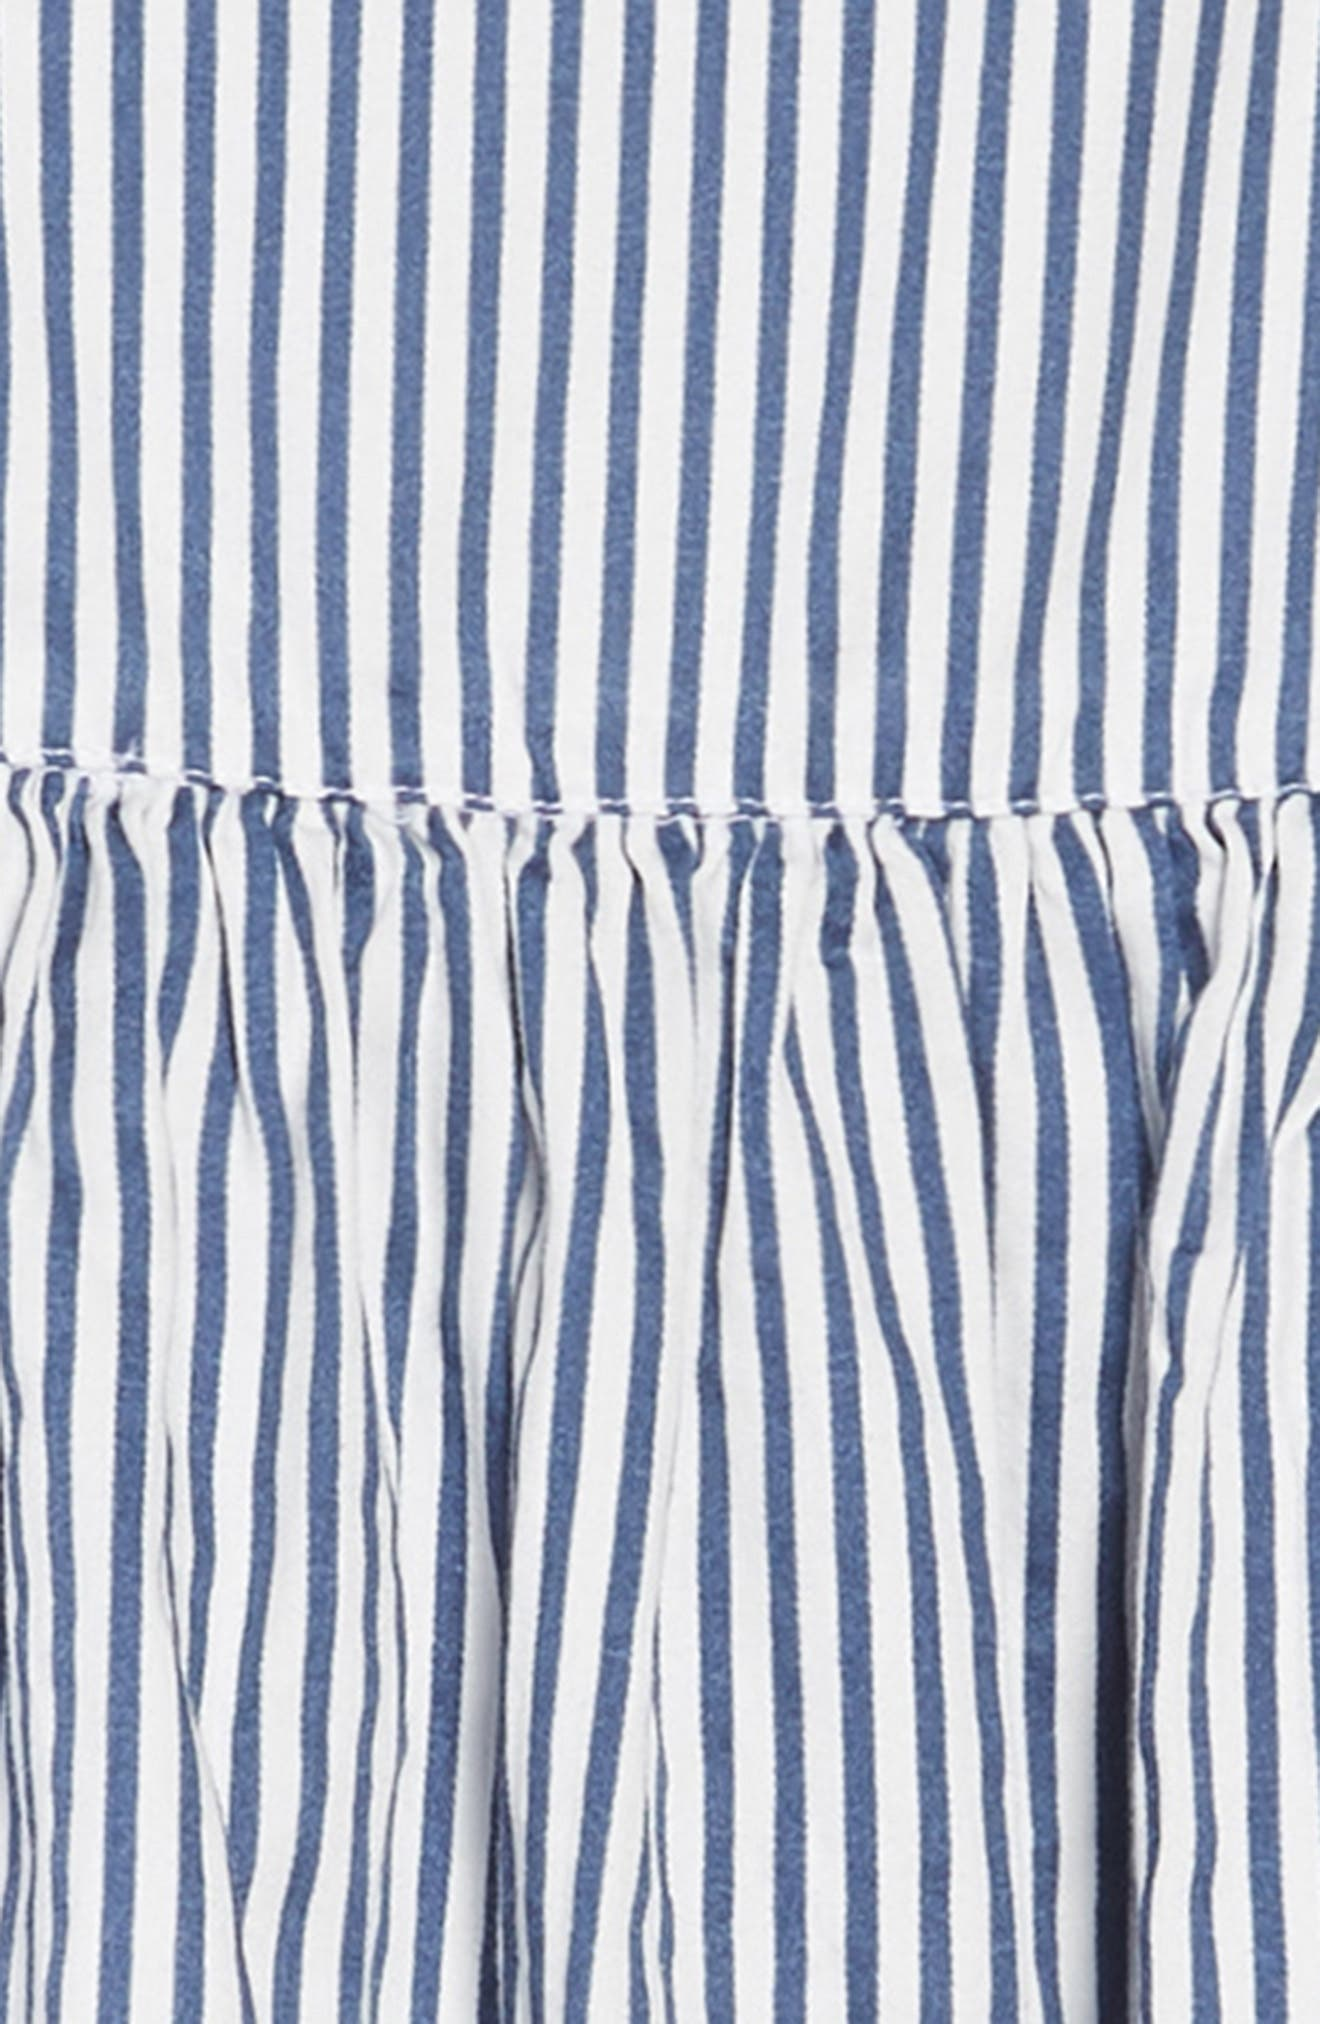 Woven Stripe Dress,                             Alternate thumbnail 3, color,                             WHITE- NAVY STRIPE